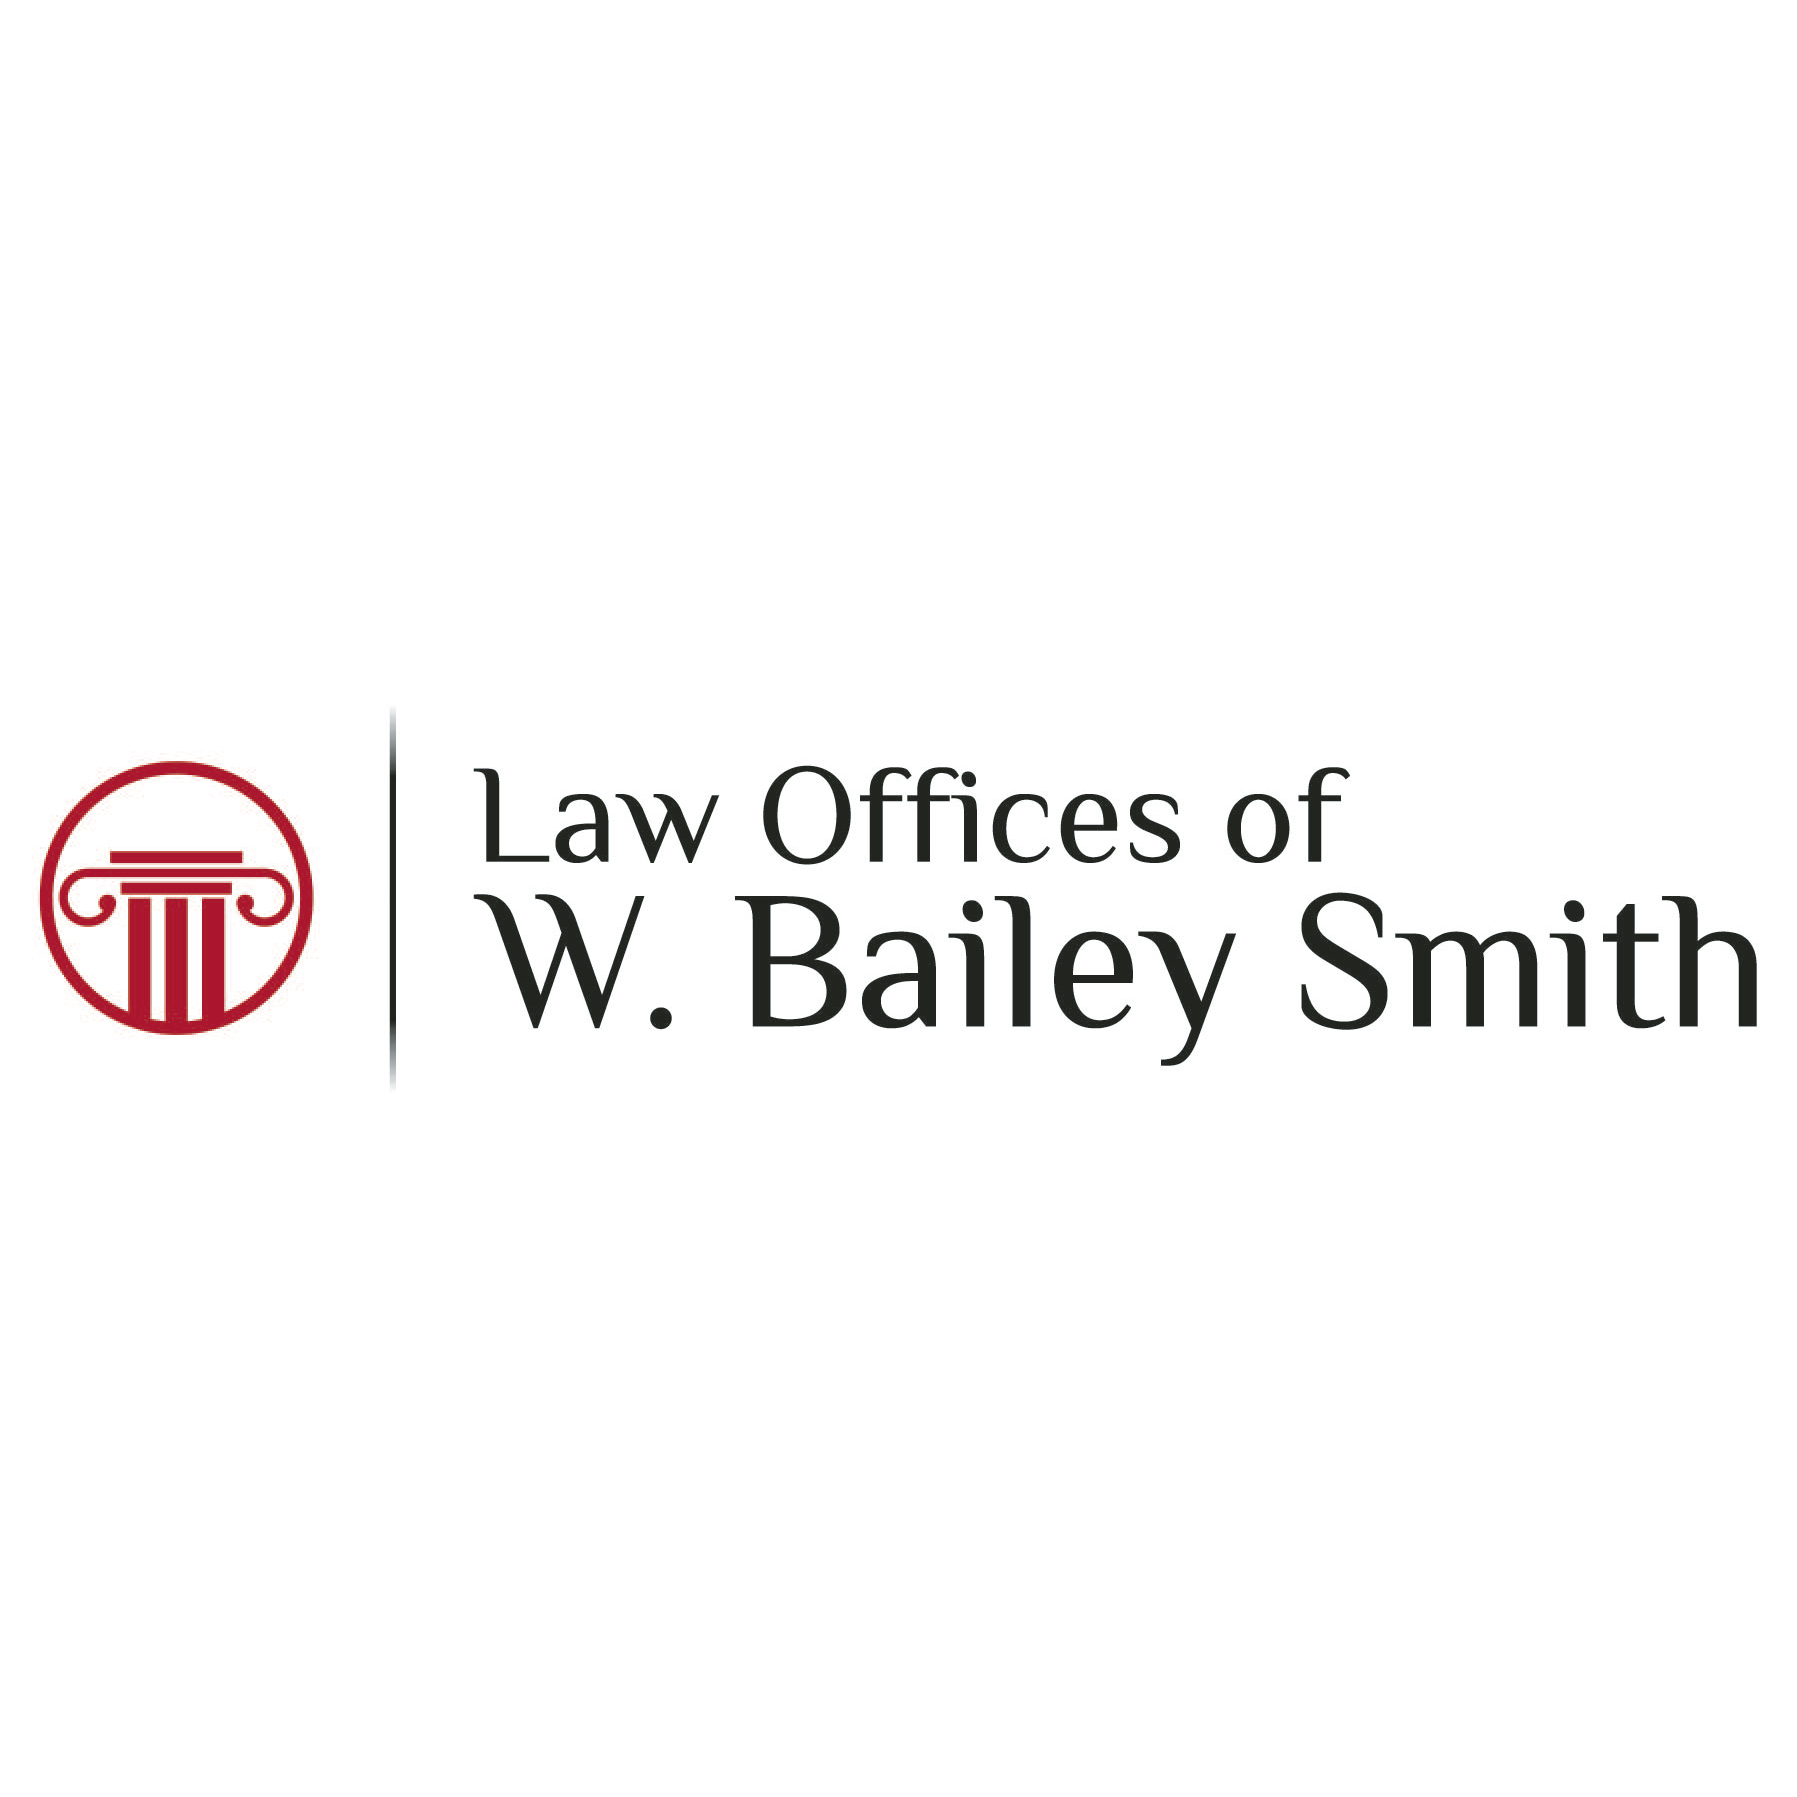 Law Offices of W. Bailey Smith